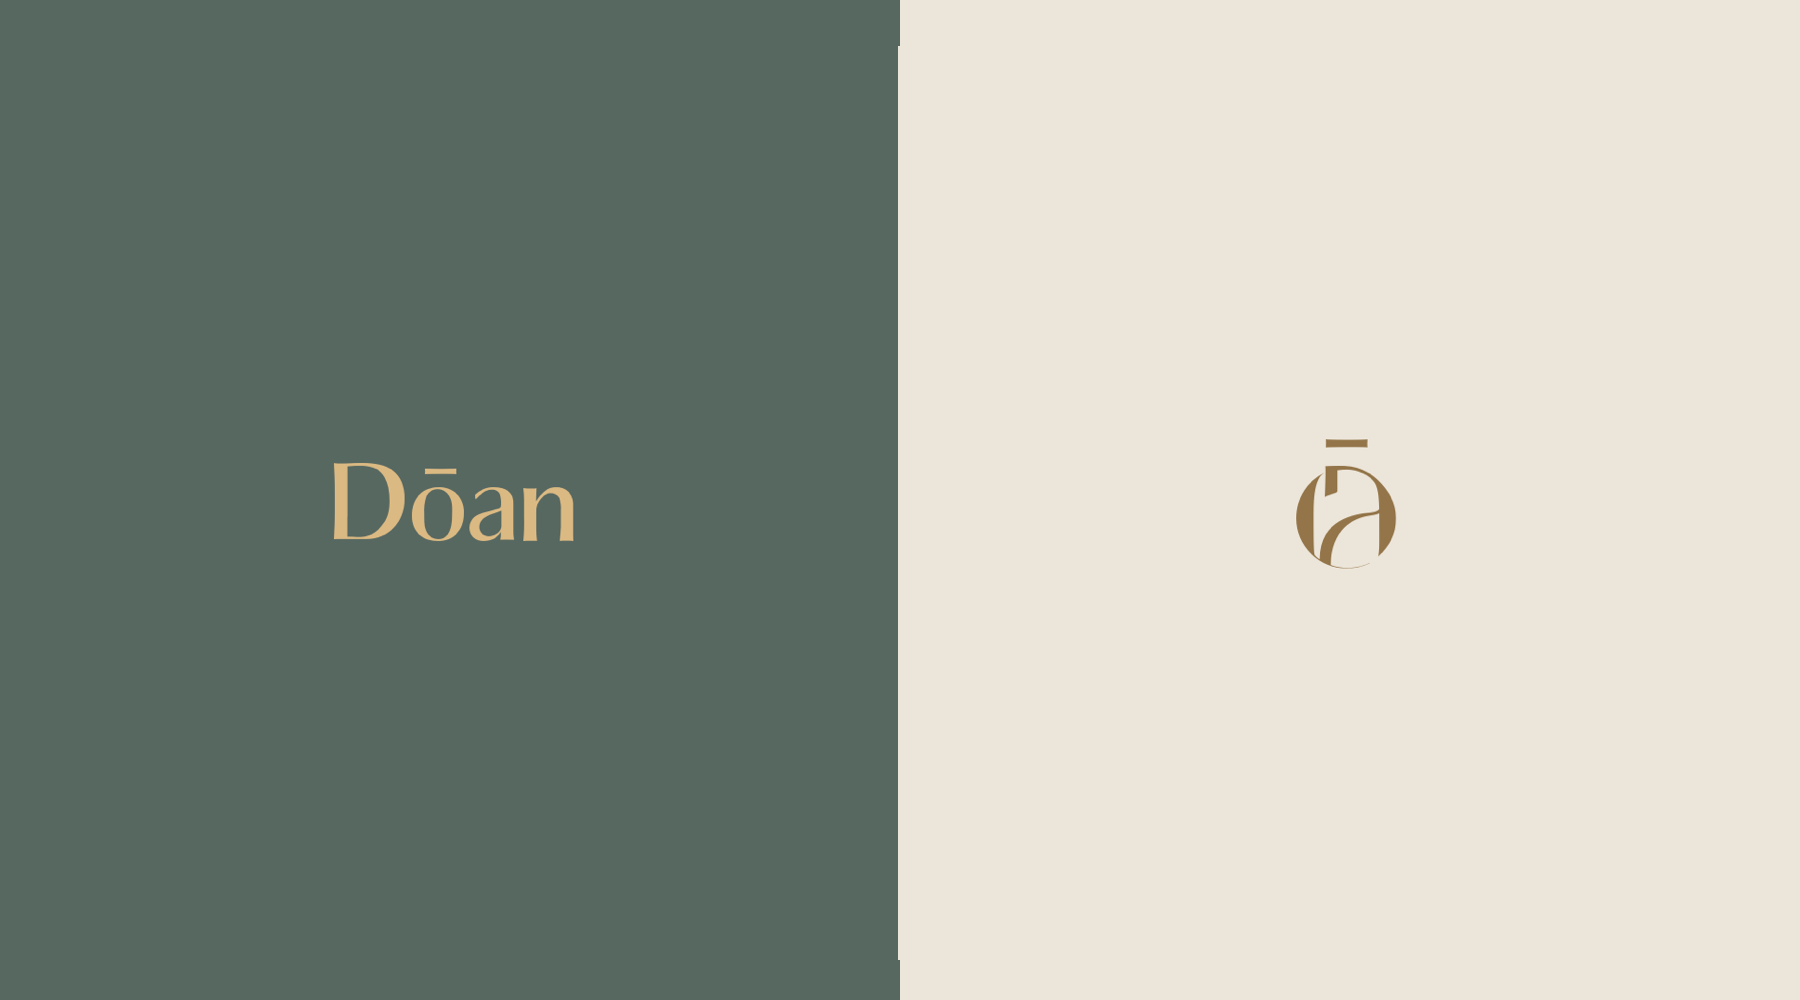 DOAN - Effortless beauty Branding